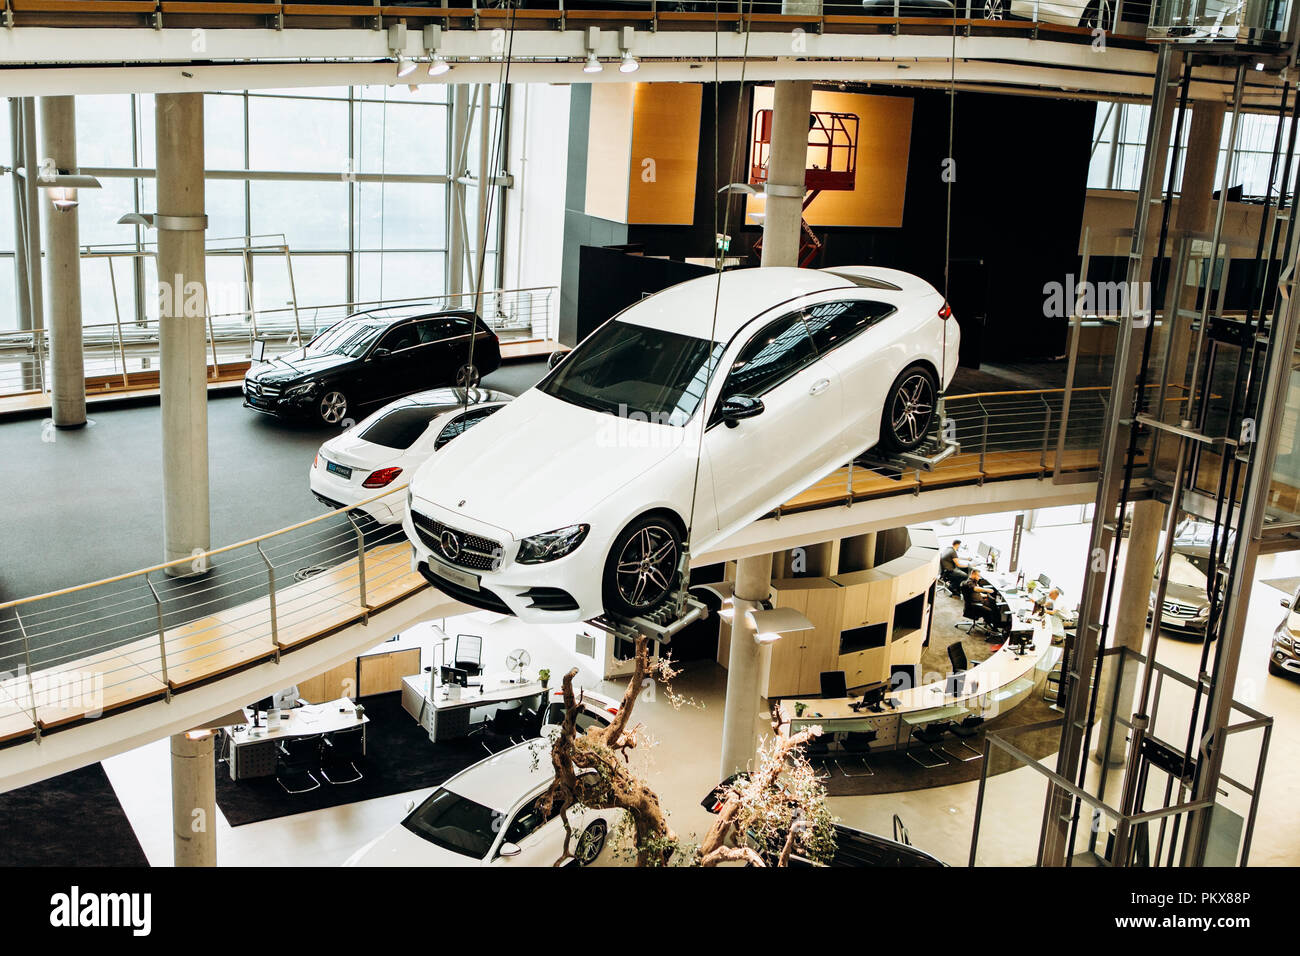 Berlin, August 29, 2018: Exhibition and sale of new cars in the official dealer center Mercedes-Benz in Berlin. A world-famous German company specializing in the production of luxury cars. - Stock Image